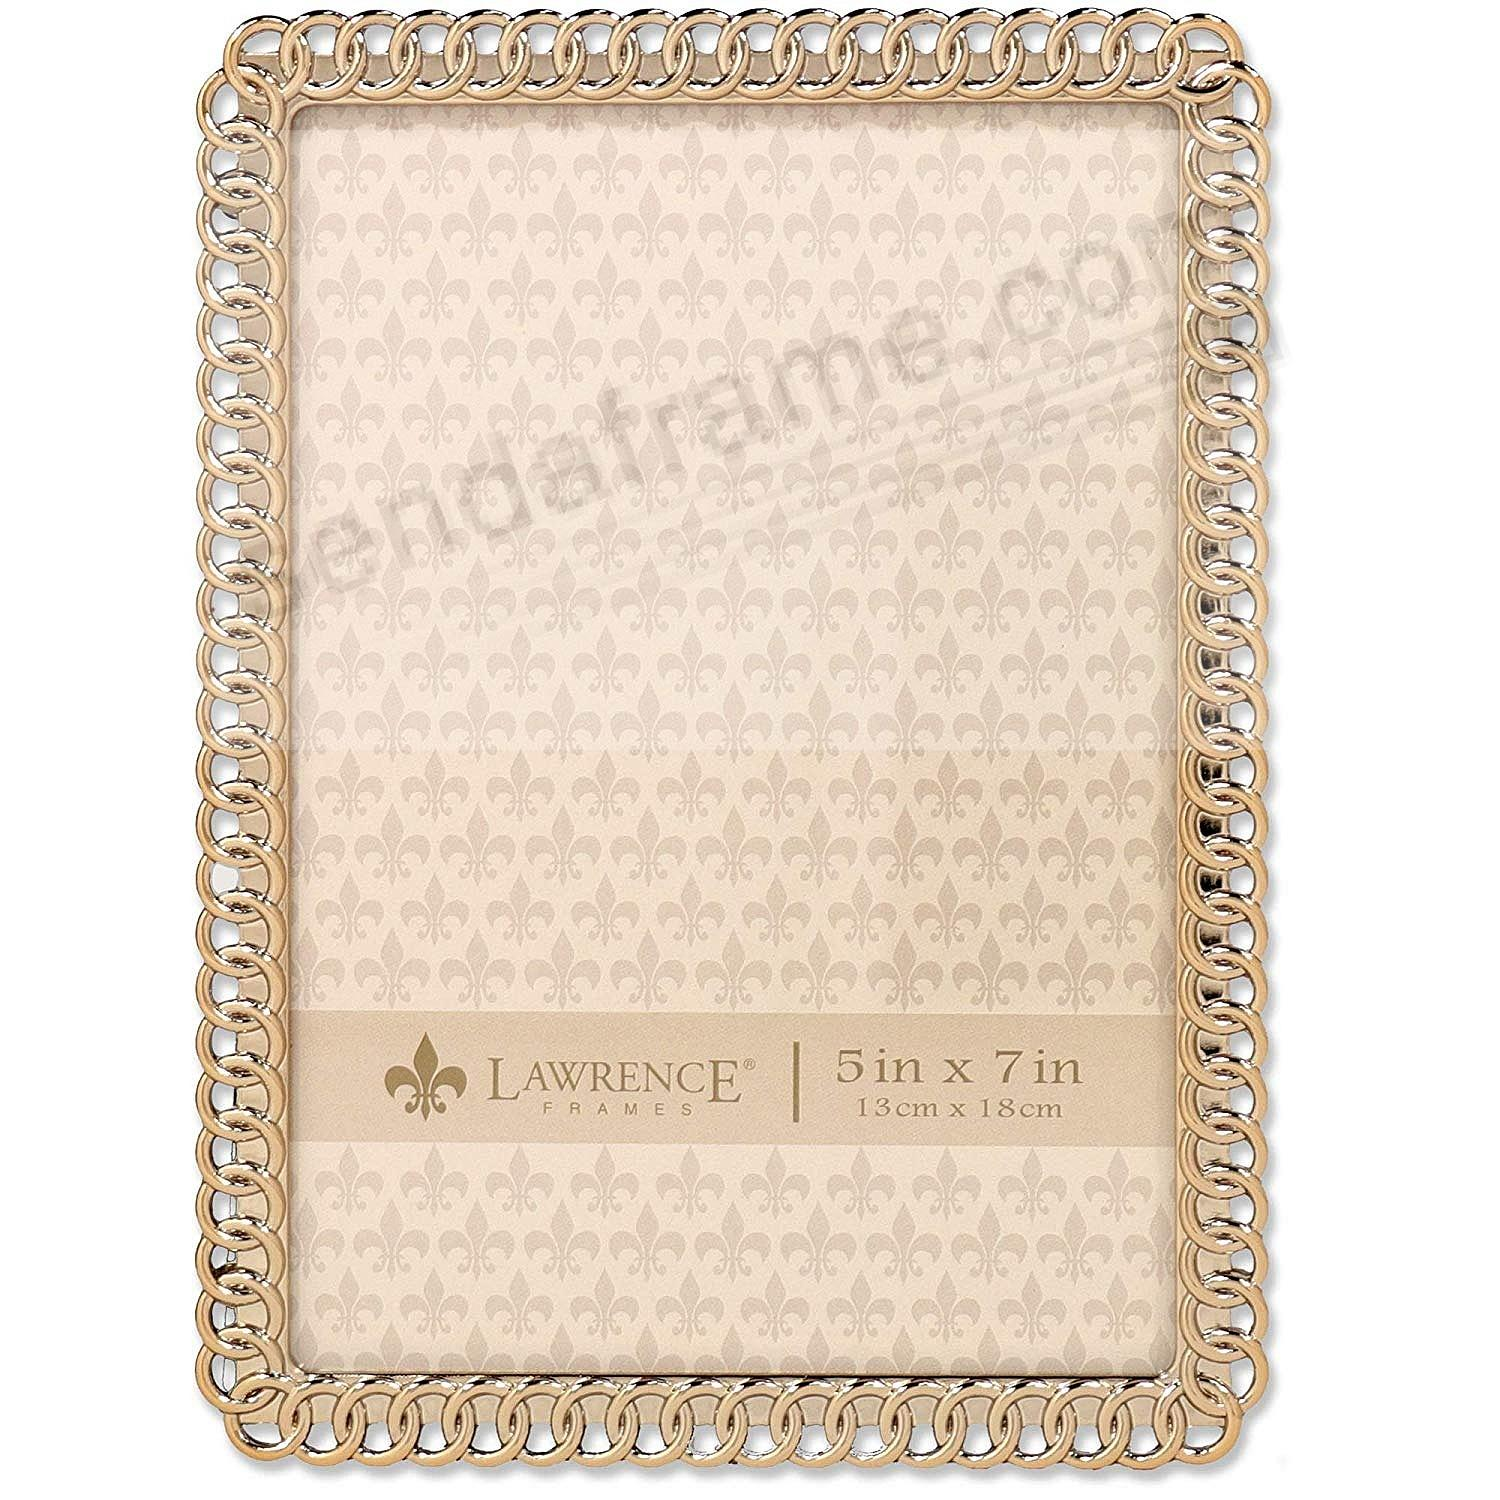 ETERNITY RINGS goldplate 5x7 frame by Lawrence®